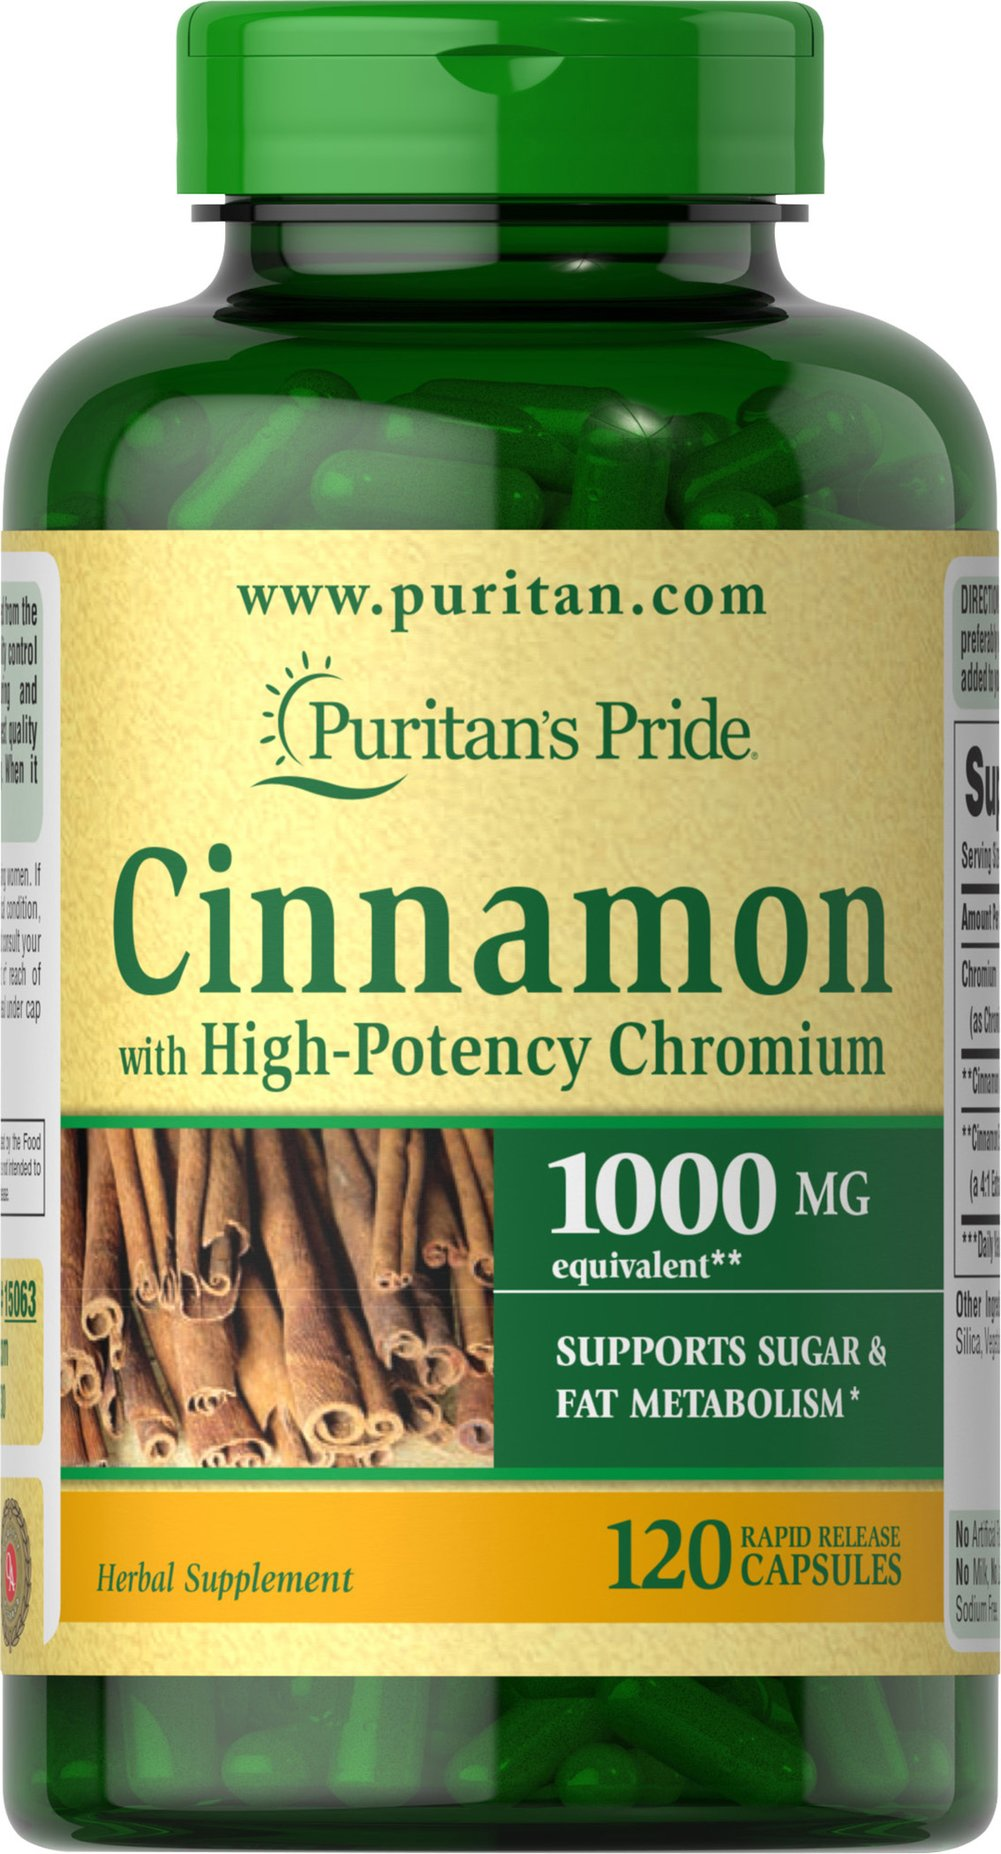 Cinnamon Complex with High Potency Chromium <ul><li>SUPPORTS SUGAR & FAT METABOLISM**</li></ul><p>Cinnamon is an ancient herb that has recently gained widespread popularity for its ability to support health and wellness.** This synergistic formula includes high-potency Chromium Picolinate. Specially formulated to deliver 1000 mg Cinnamon and 200 mcg Chromium Picolinate — an unbeatable combination.</p> 120 Capsules 1000 mg $24.99